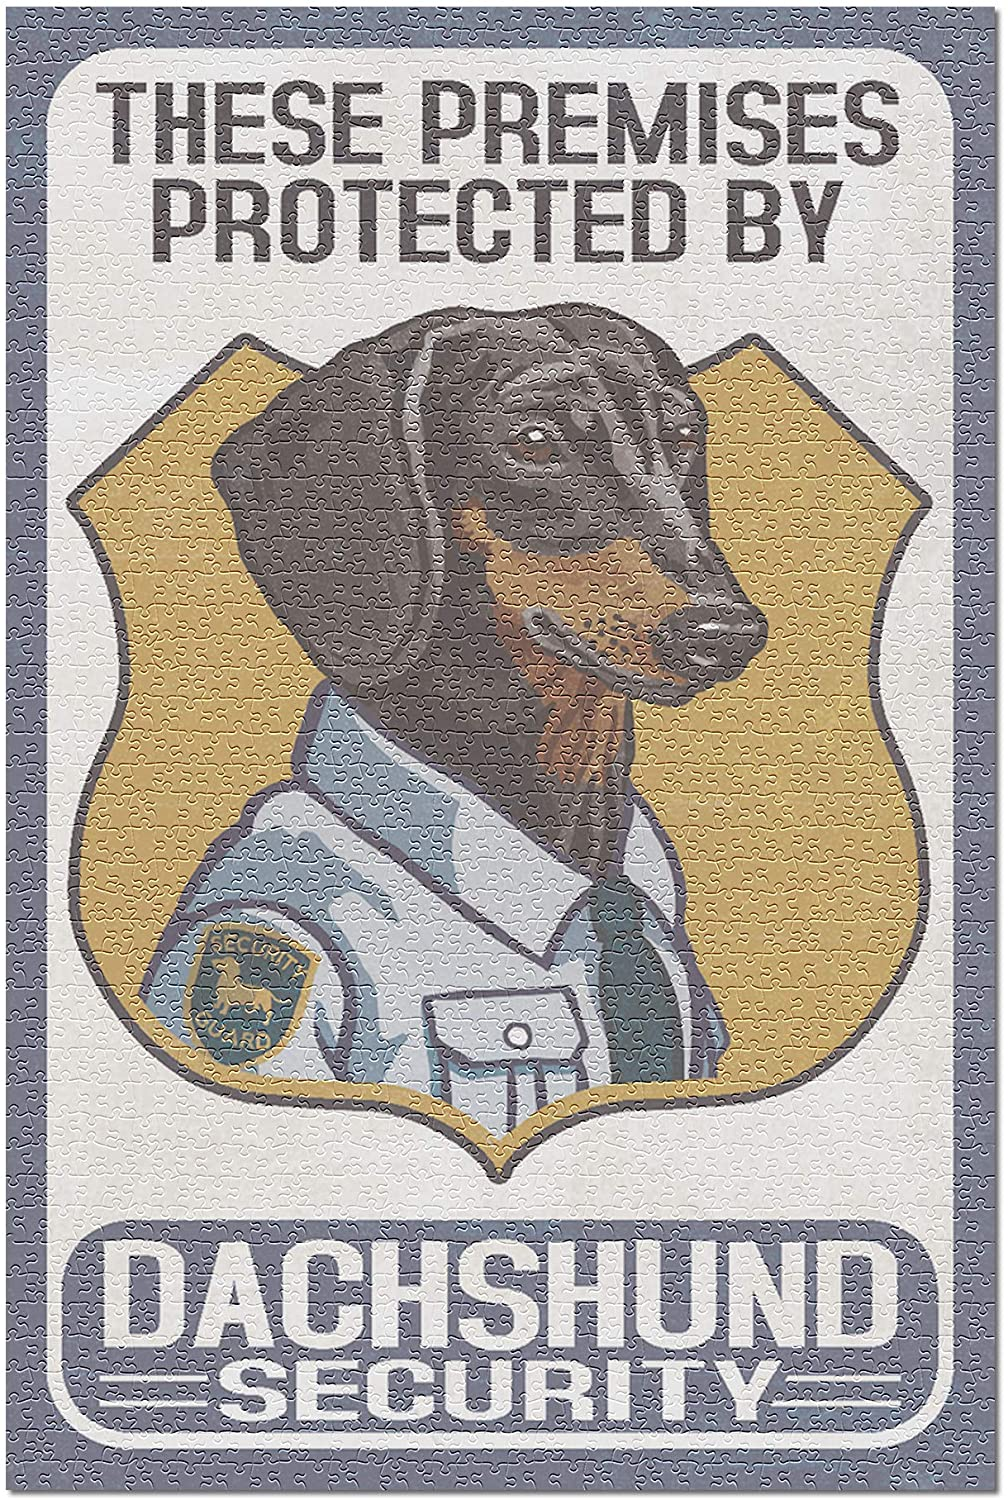 Dachshund Security - Dog Sign (Premium 1000 Piece Jigsaw Puzzle for Adults, 19x27)